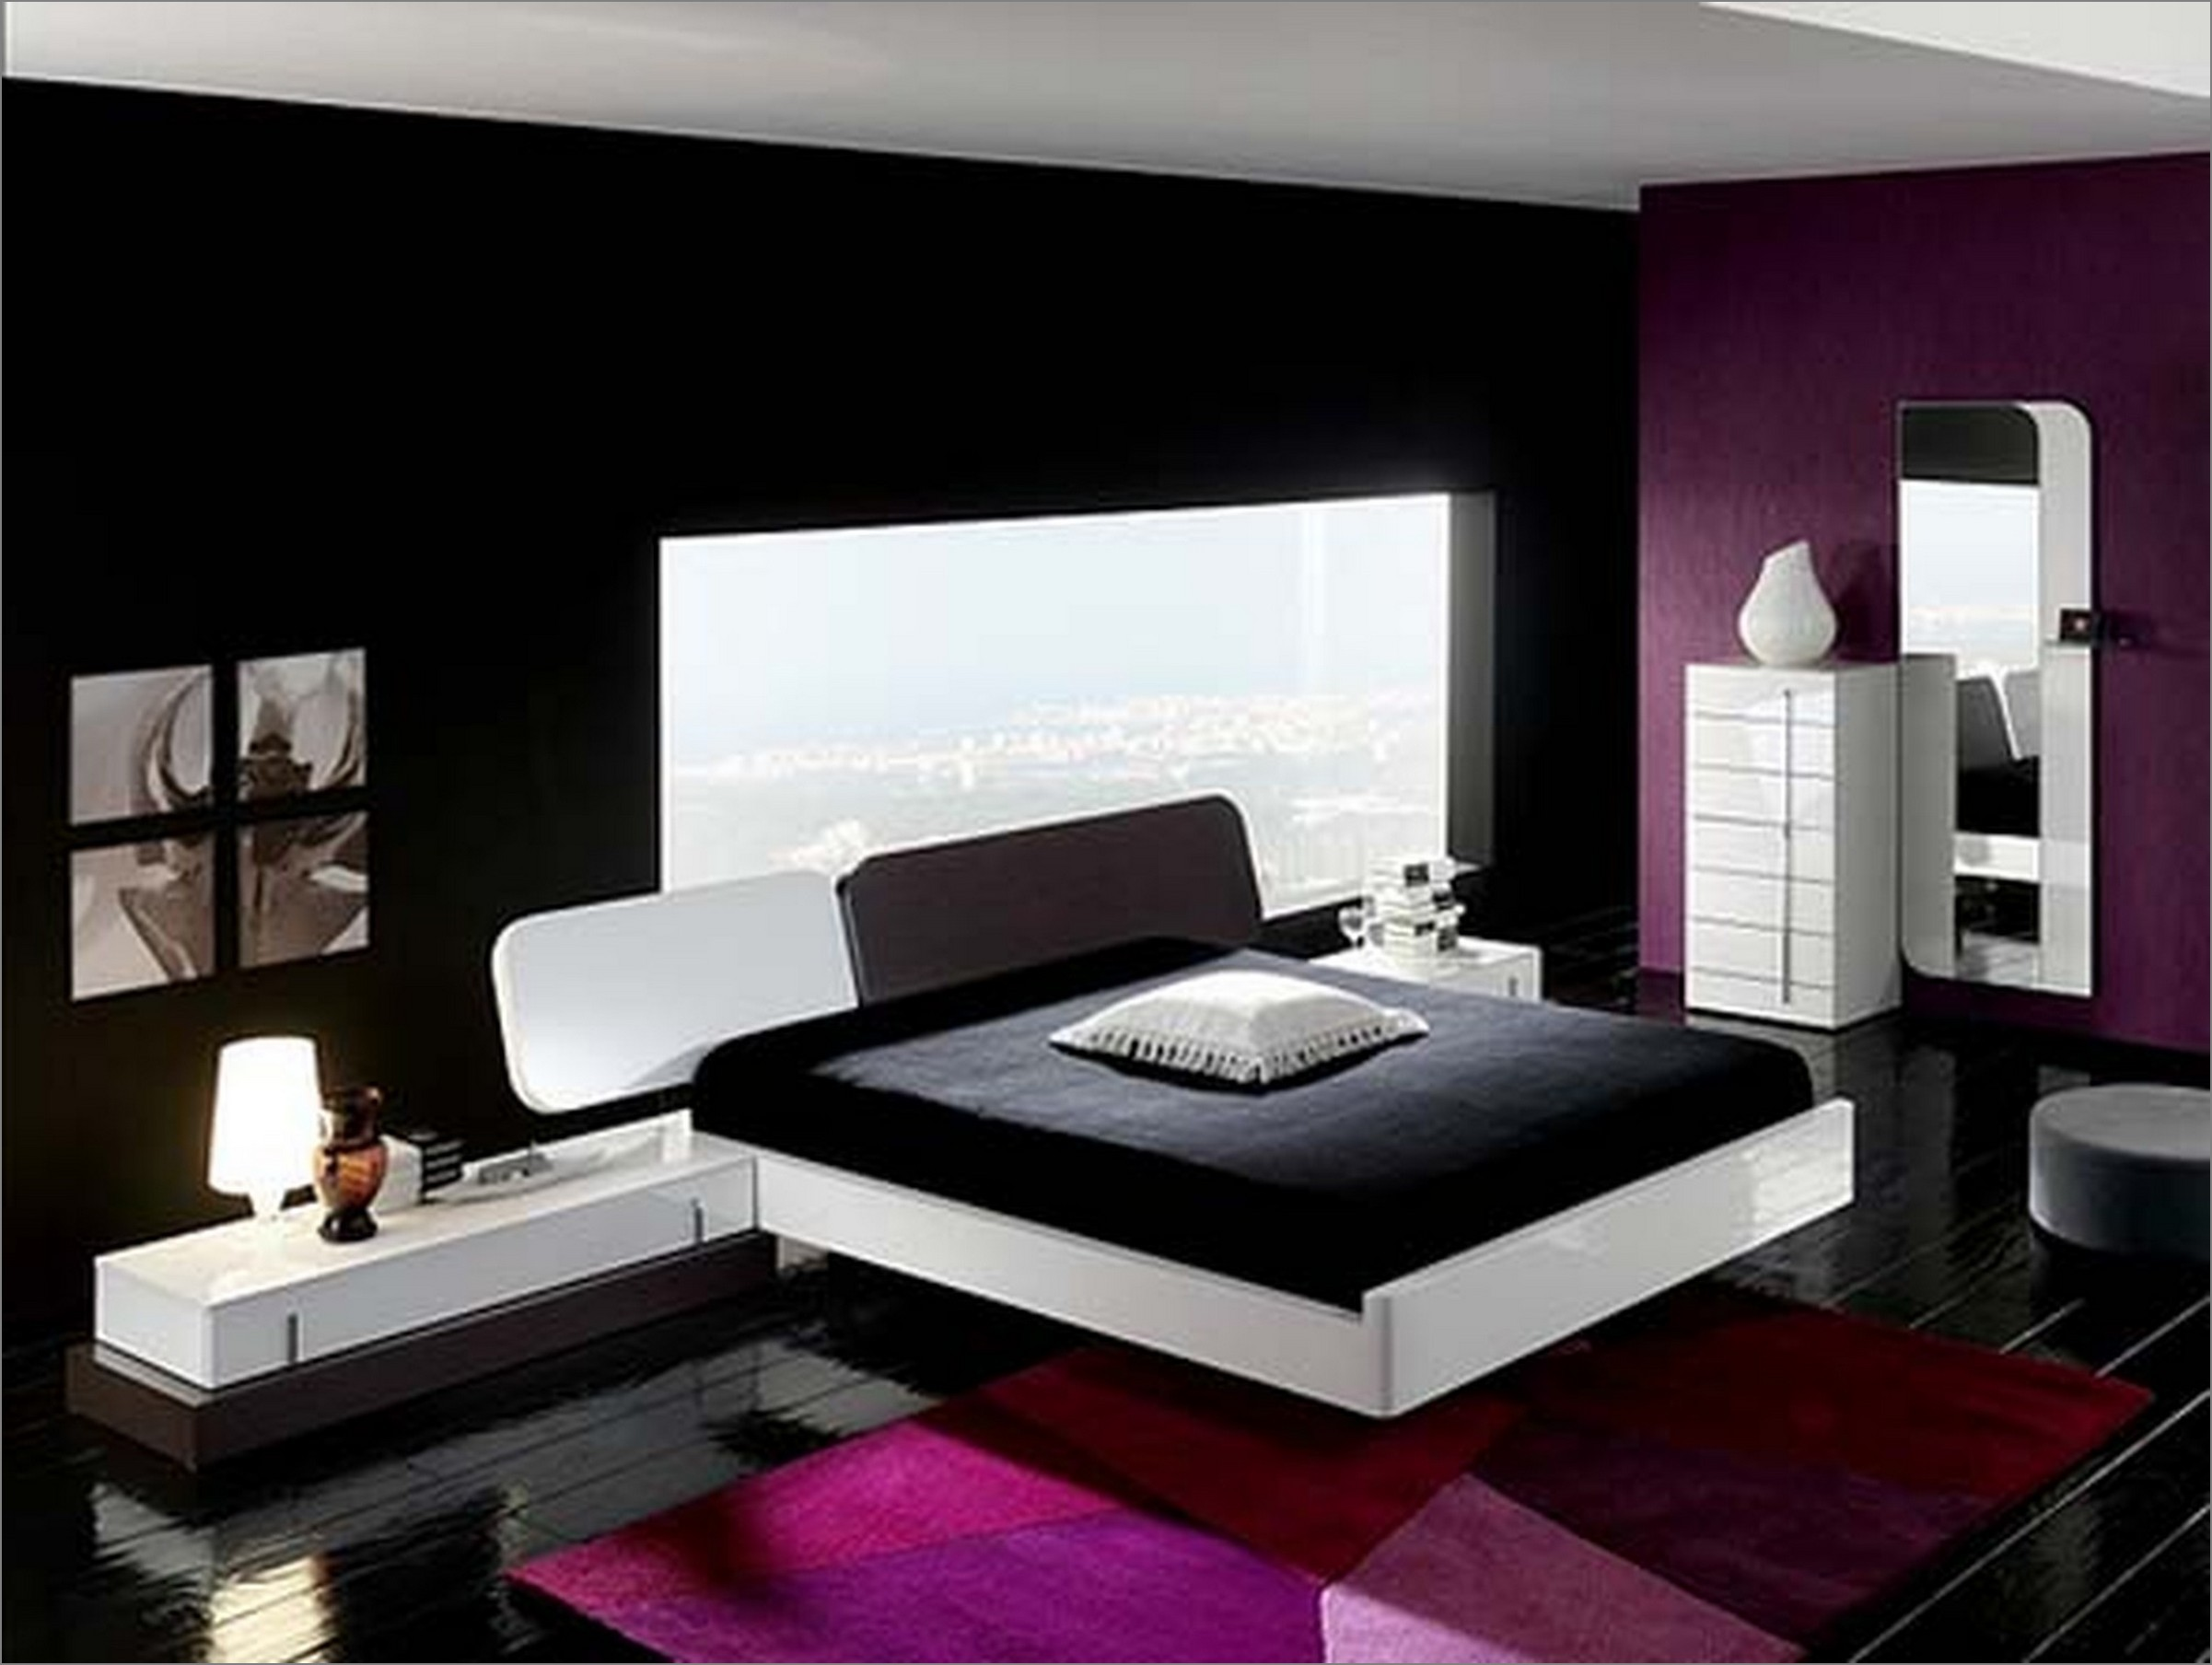 appealing-modern-bedroom-decorating-ideas-with-black-and-purple-wall-paint-color-themes-also-featuring-contemporary-white-low-profile-bed-floating-style-incorporates-black-f